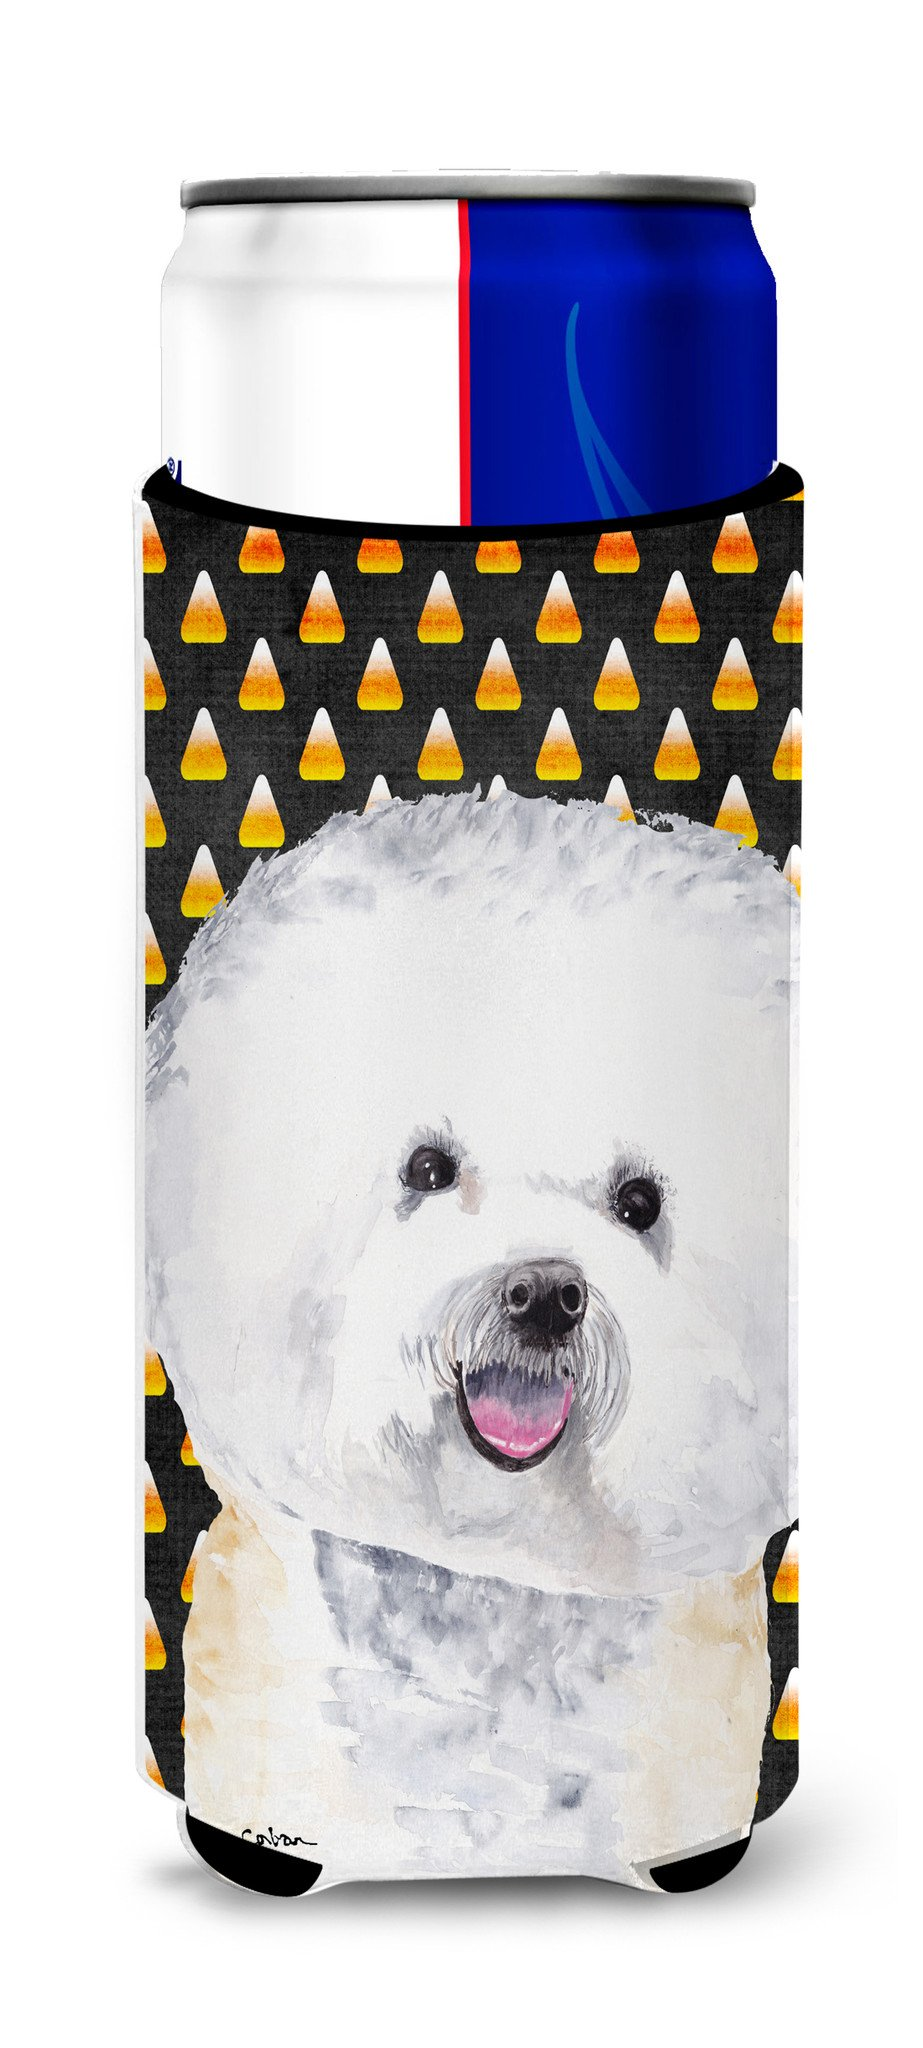 Bichon Frise Candy Corn Halloween Portrait Ultra Beverage Insulators for slim cans SC9173MUK by Caroline's Treasures